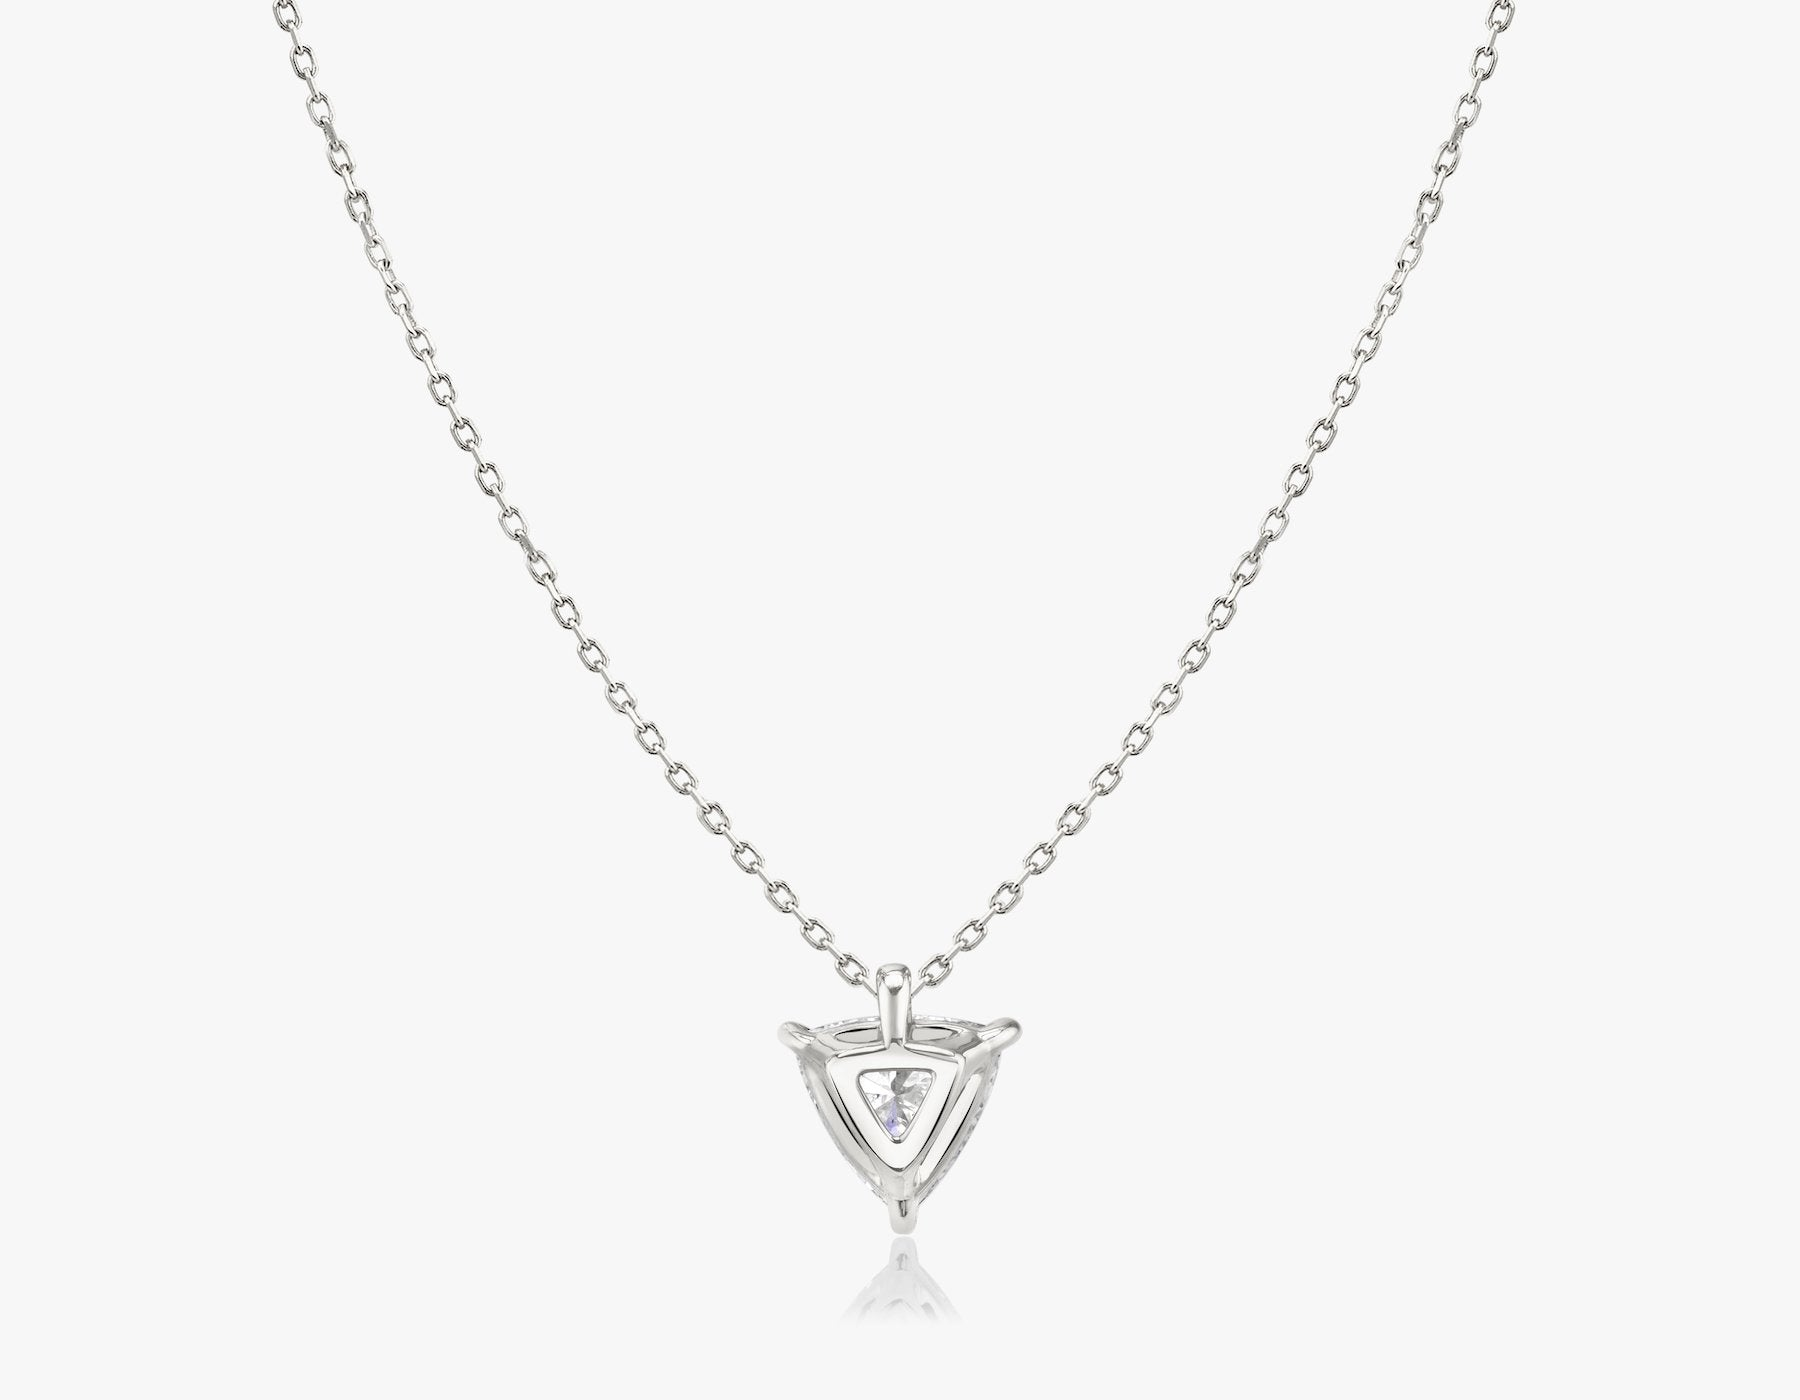 Vrai 14k solid gold Solitaire Trillion Diamond Pendant sustainably created triangle diamond prong set on simple chain necklace back view, 14K White Gold